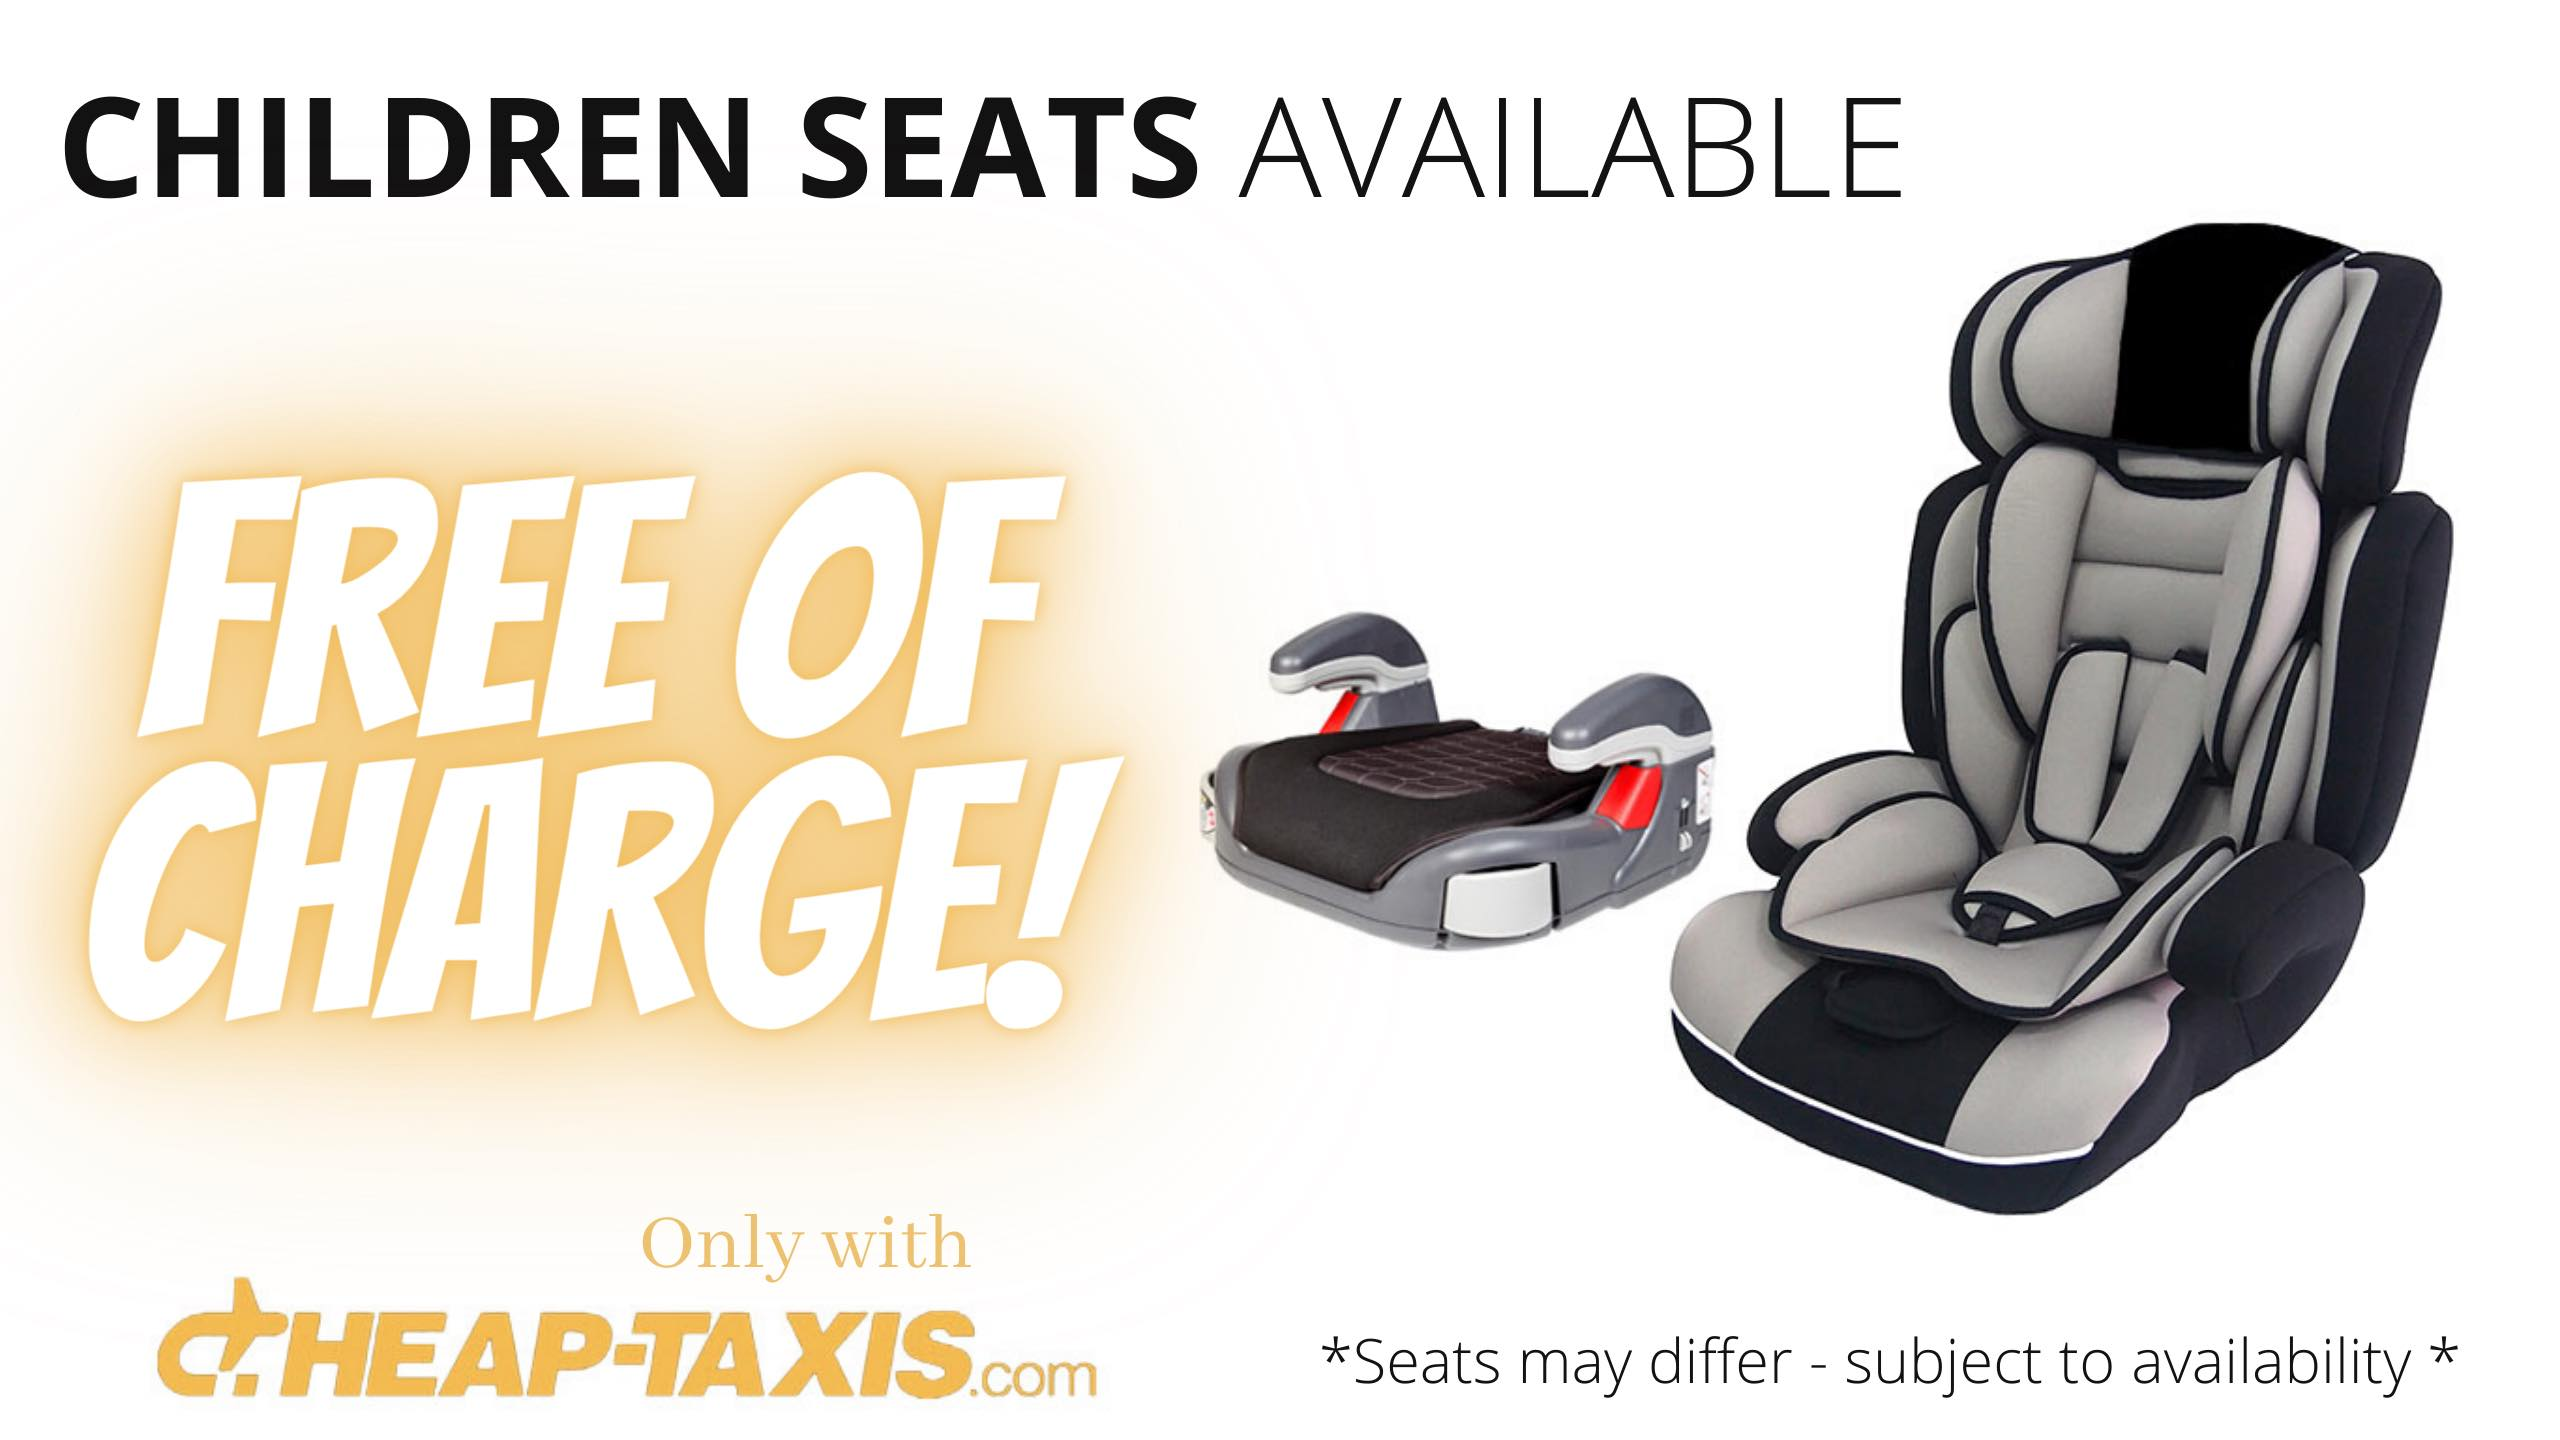 child seats are offerd free of charge